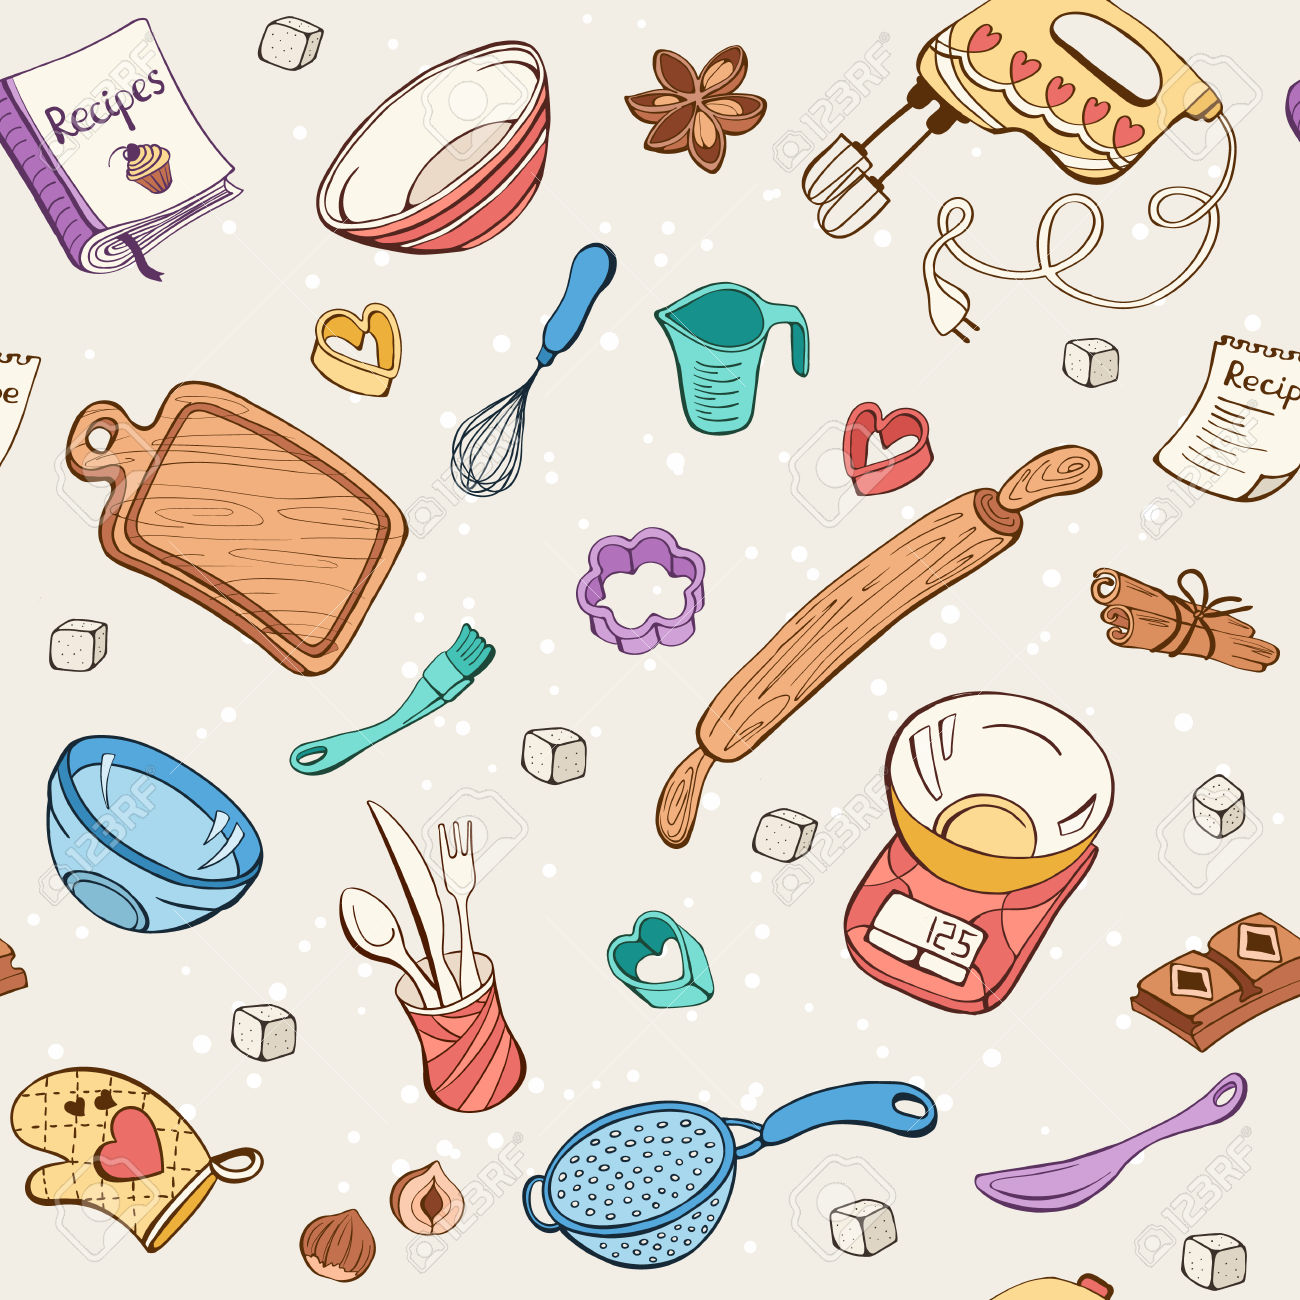 Baking clipart background. Station